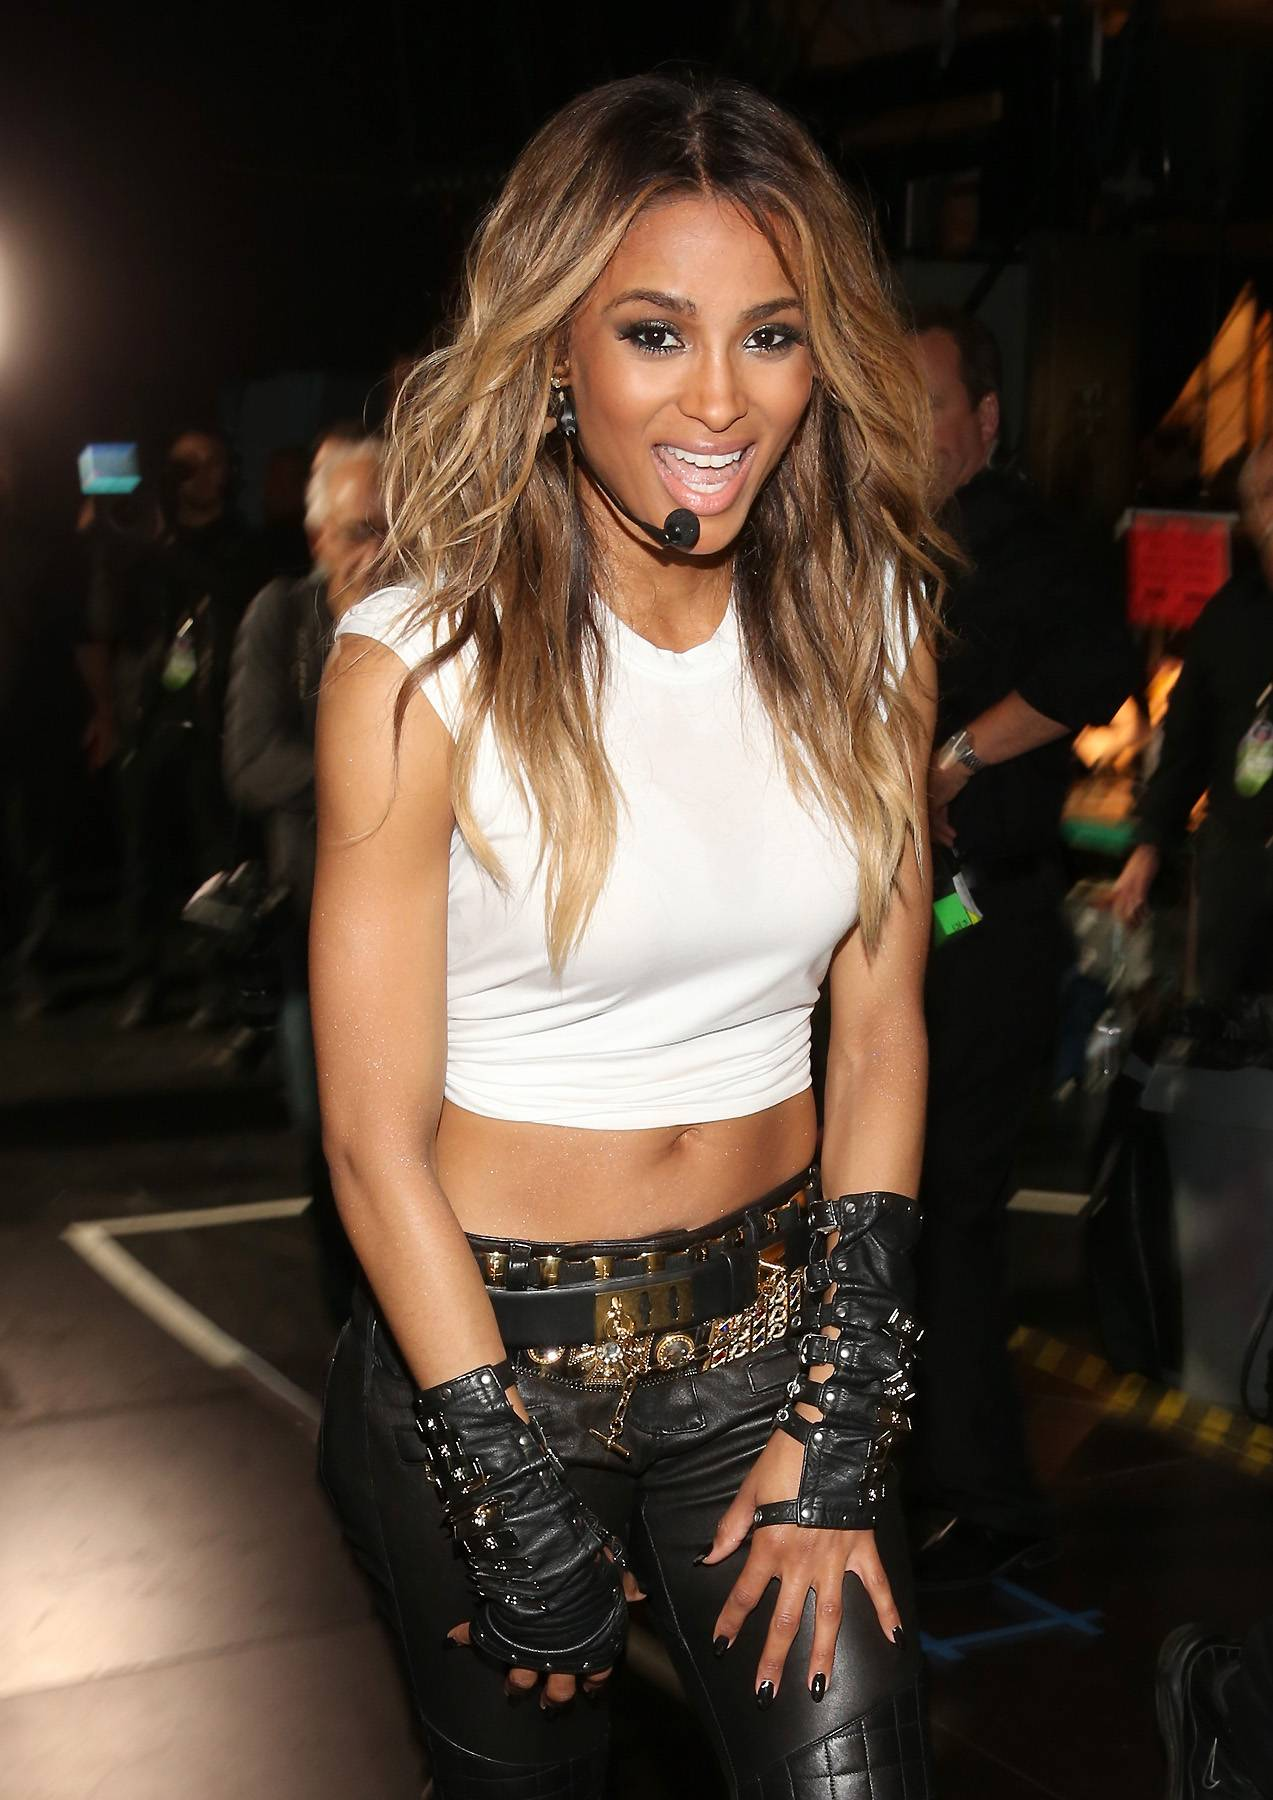 """Ciara @Ciara - Tweet: """"Puttin Dat Work In Before the Show on NYE..:)#OWA? http://instagr.am/p/T81hFHyHno/ """"Whether on stage or apparently online, Ciara makes sure she handles business.(Photo: Christopher Polk/Getty Images)"""